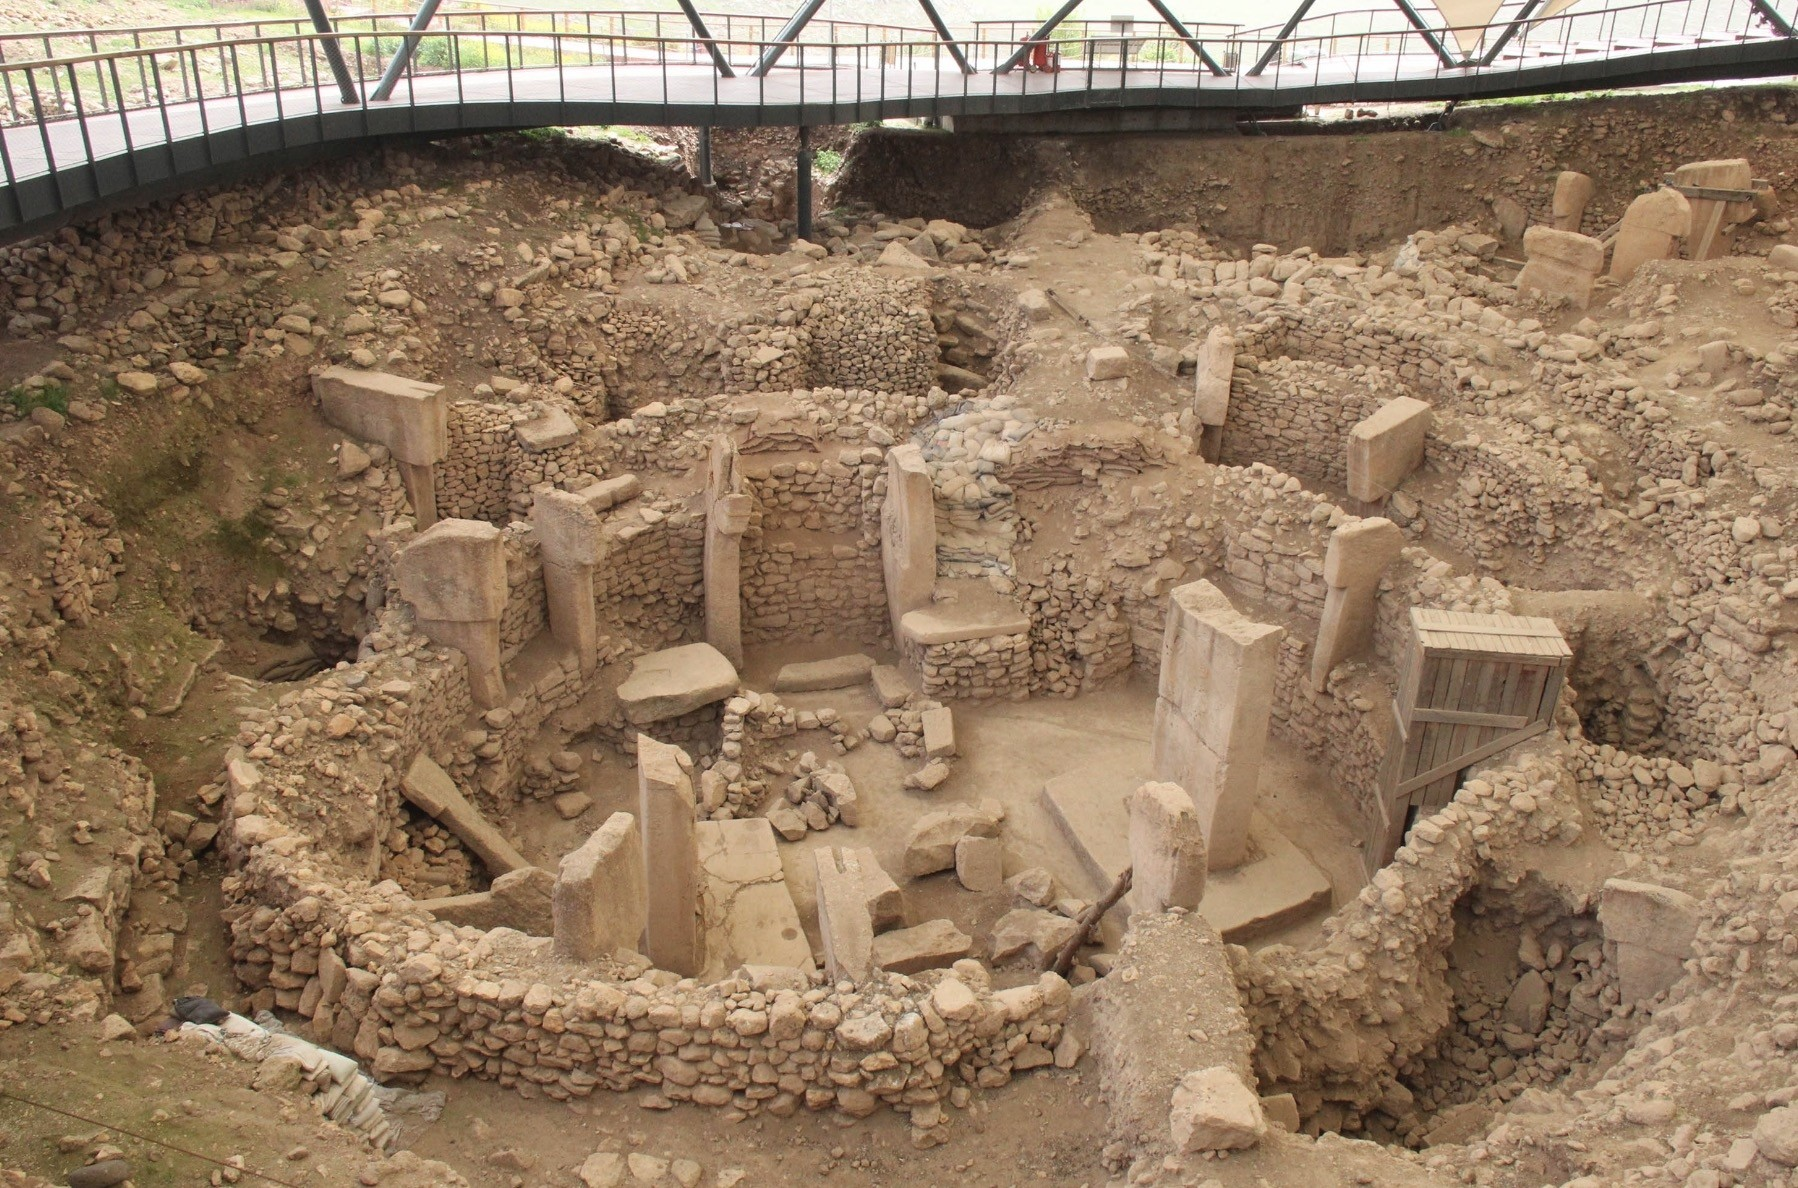 Excavations have been ongoing for about a quarter of a century and when the size of the site is considered, they are expected to continue for another 150 years.